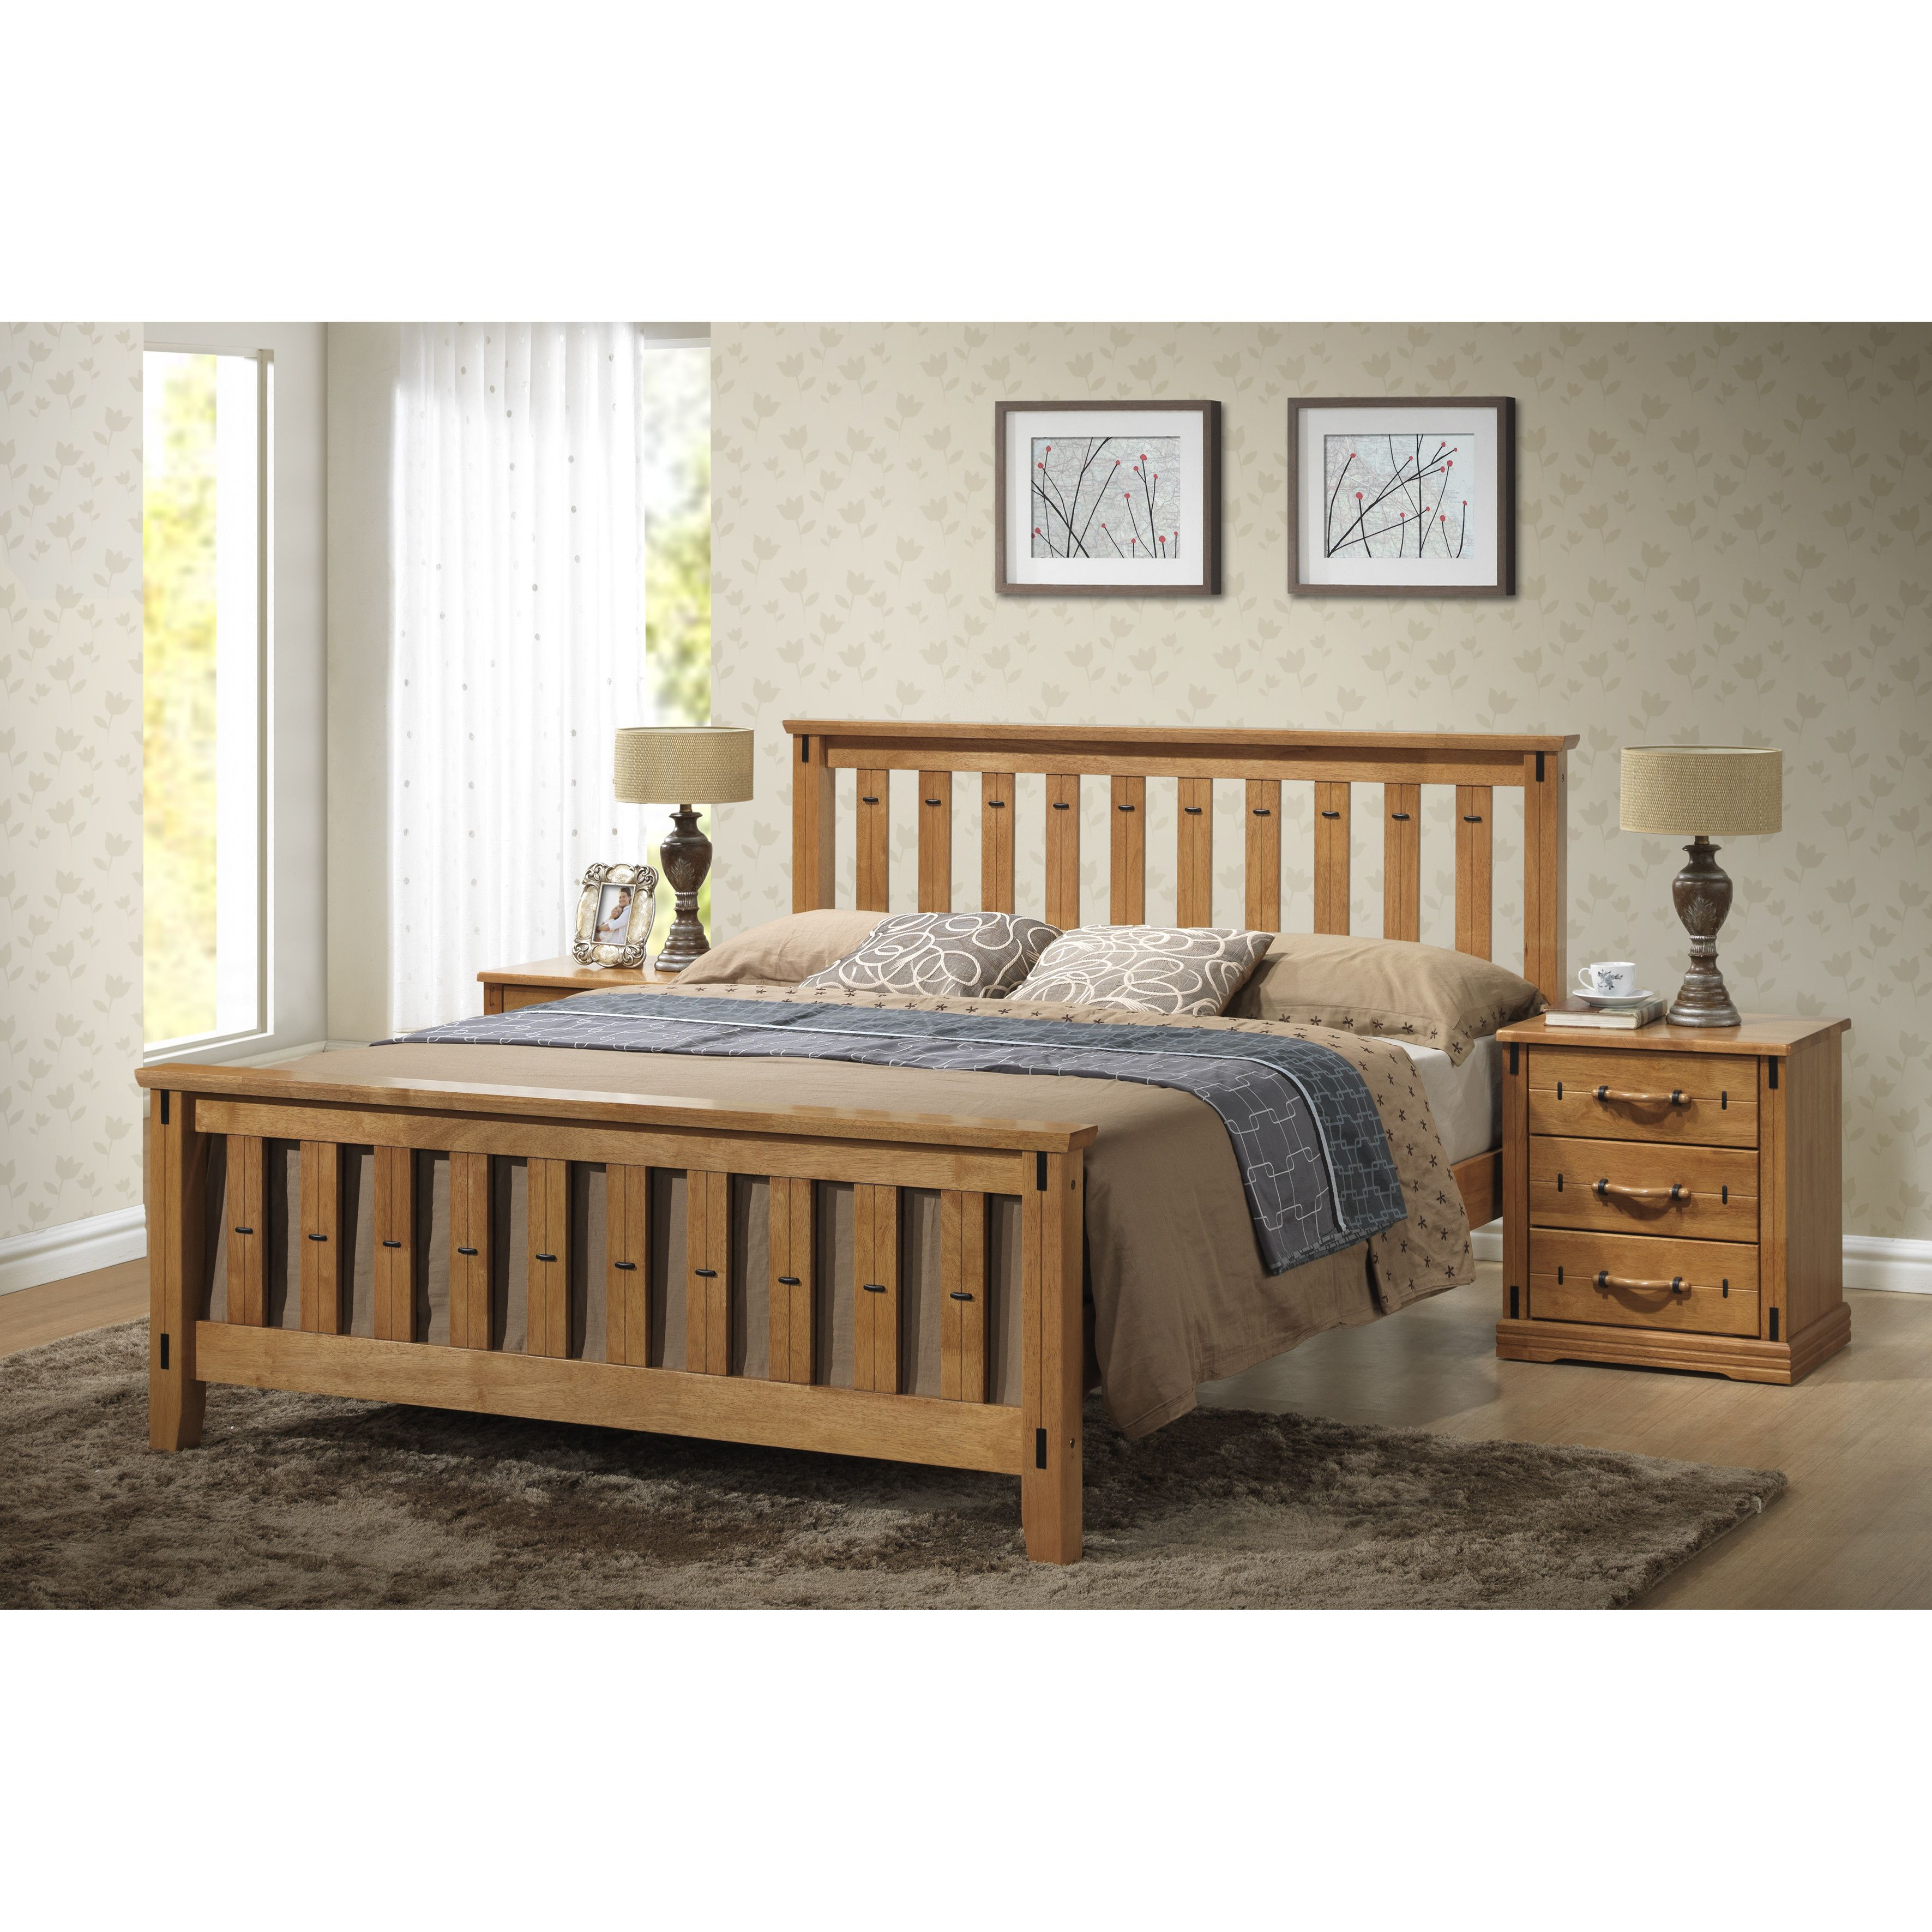 c3fa0e7eaed Customer Image Zoomed Wooden Bed Frames, Wooden Beds, Wooden King Size Bed,  Apartment